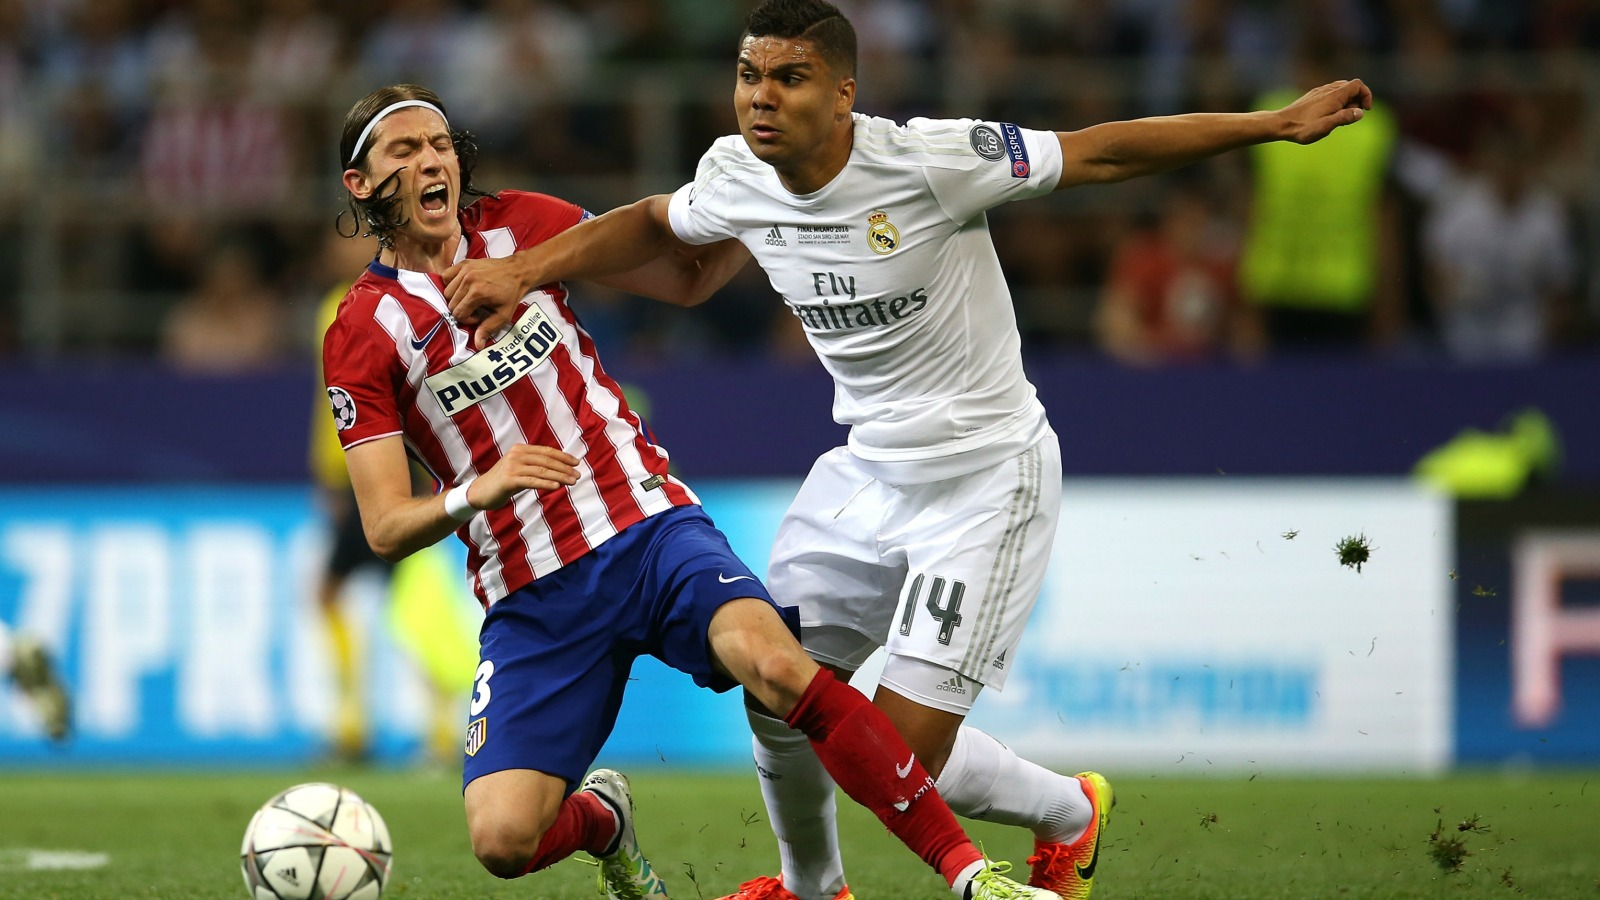 Casemiro put on a show for Real Madrid in the Champions League final